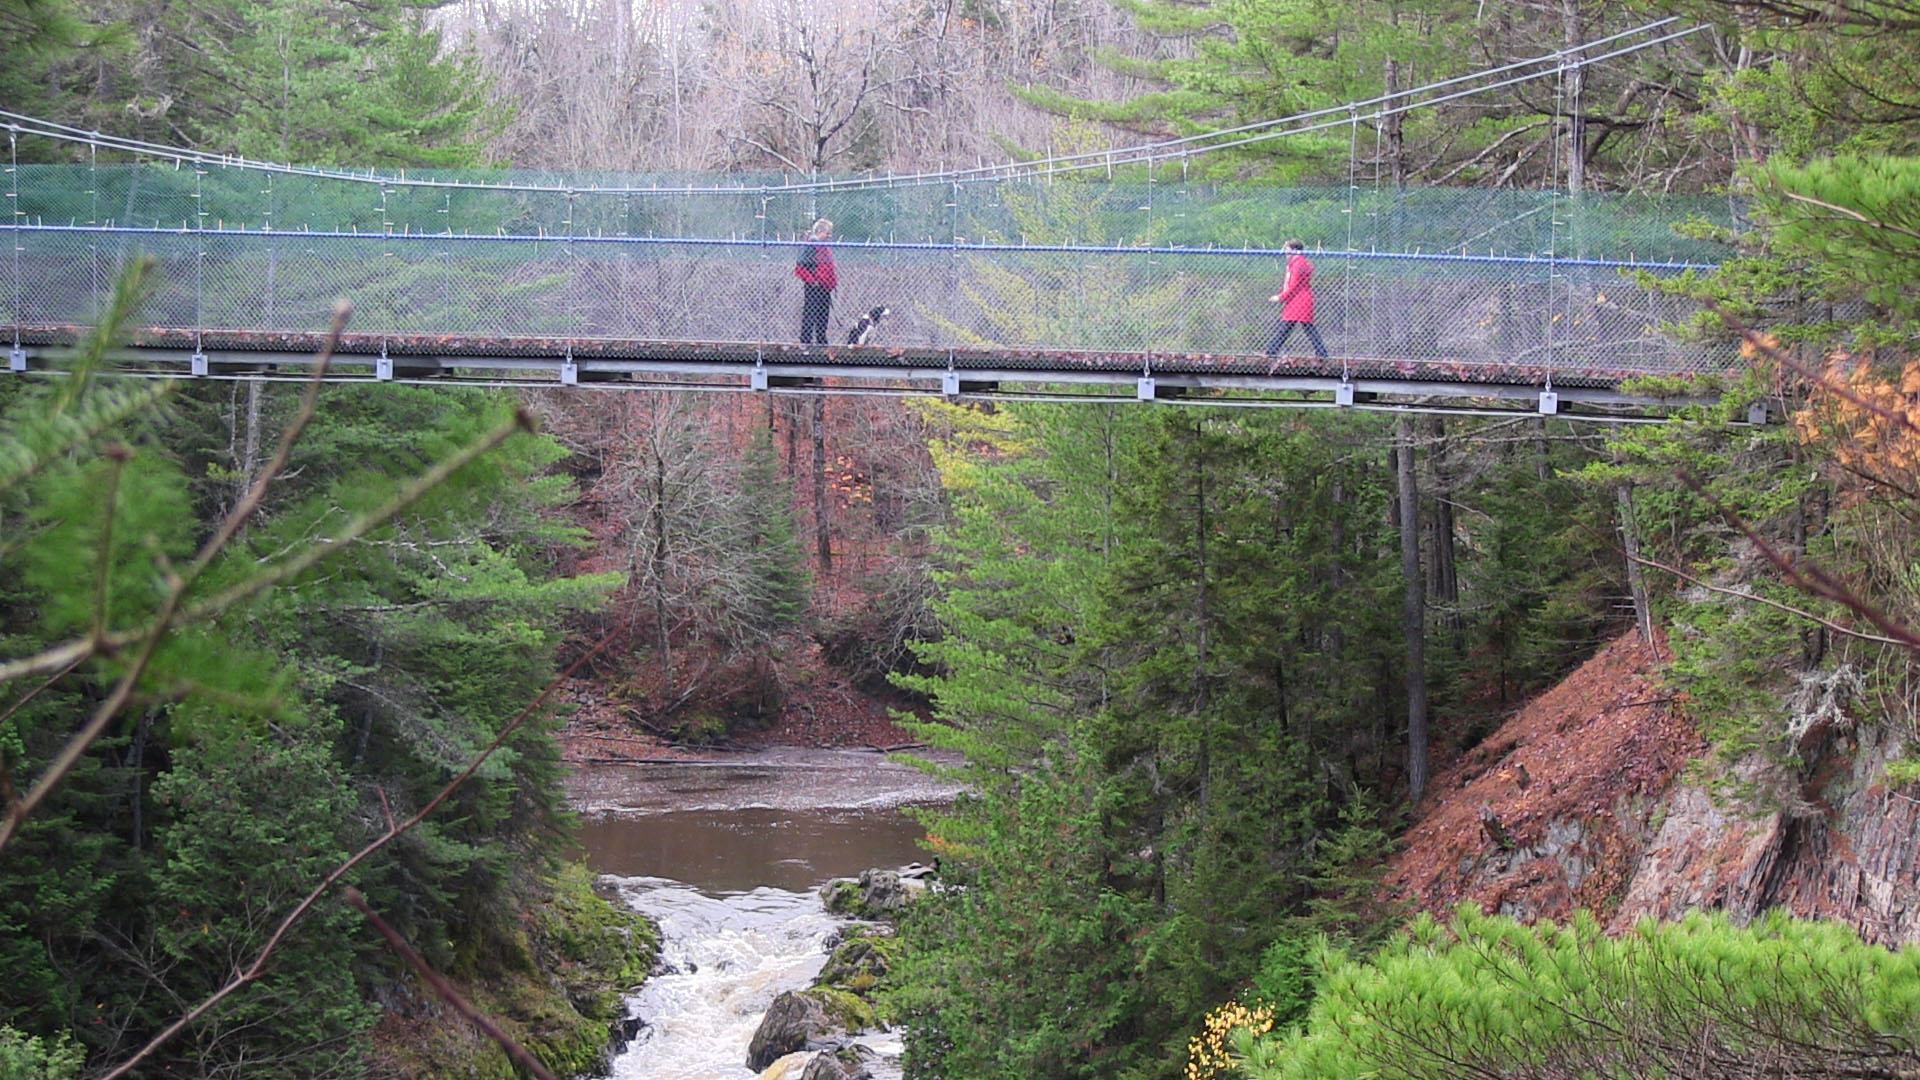 Photo des chutes no 7 et la passerelle.